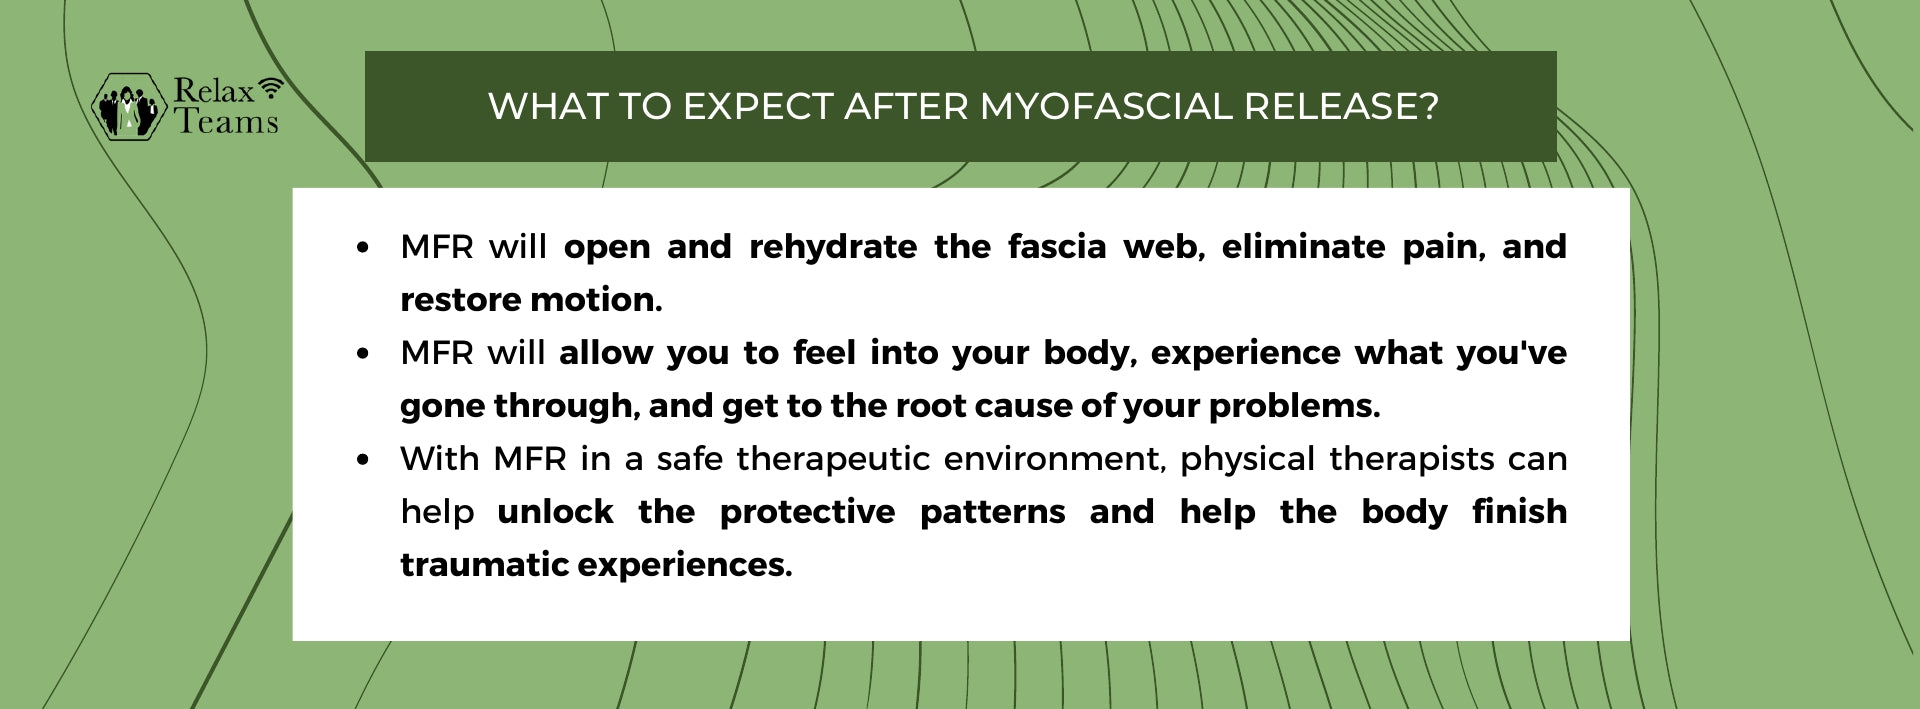 With MFR in a safe therapeutic environment, physical therapists can help unlock the protective patterns and help the body finish traumatic experiences.